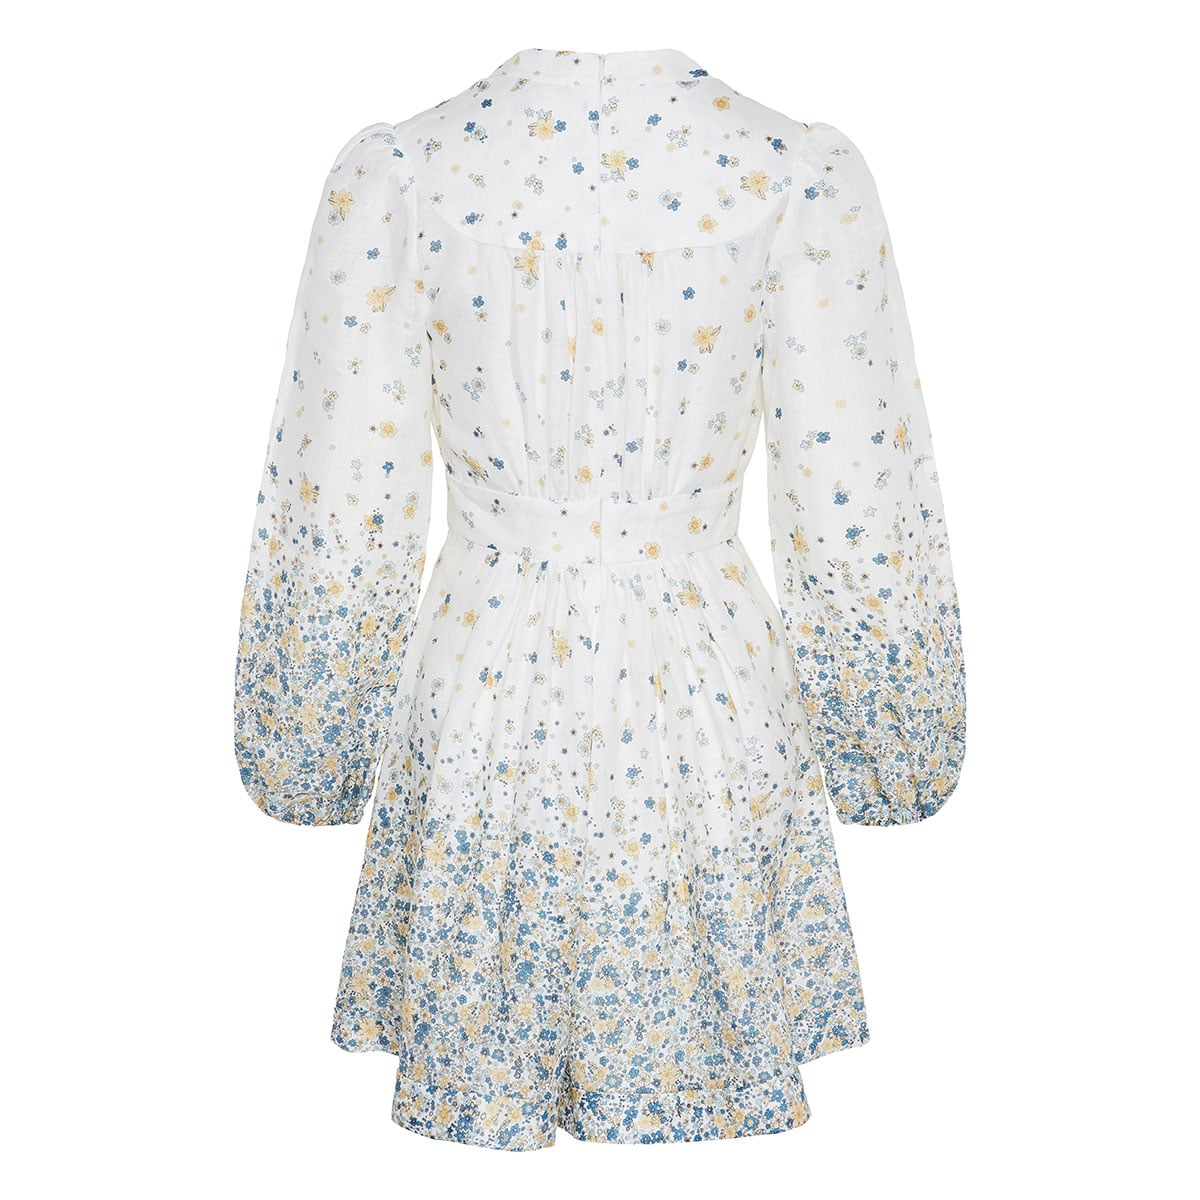 Carnaby floral mini dress